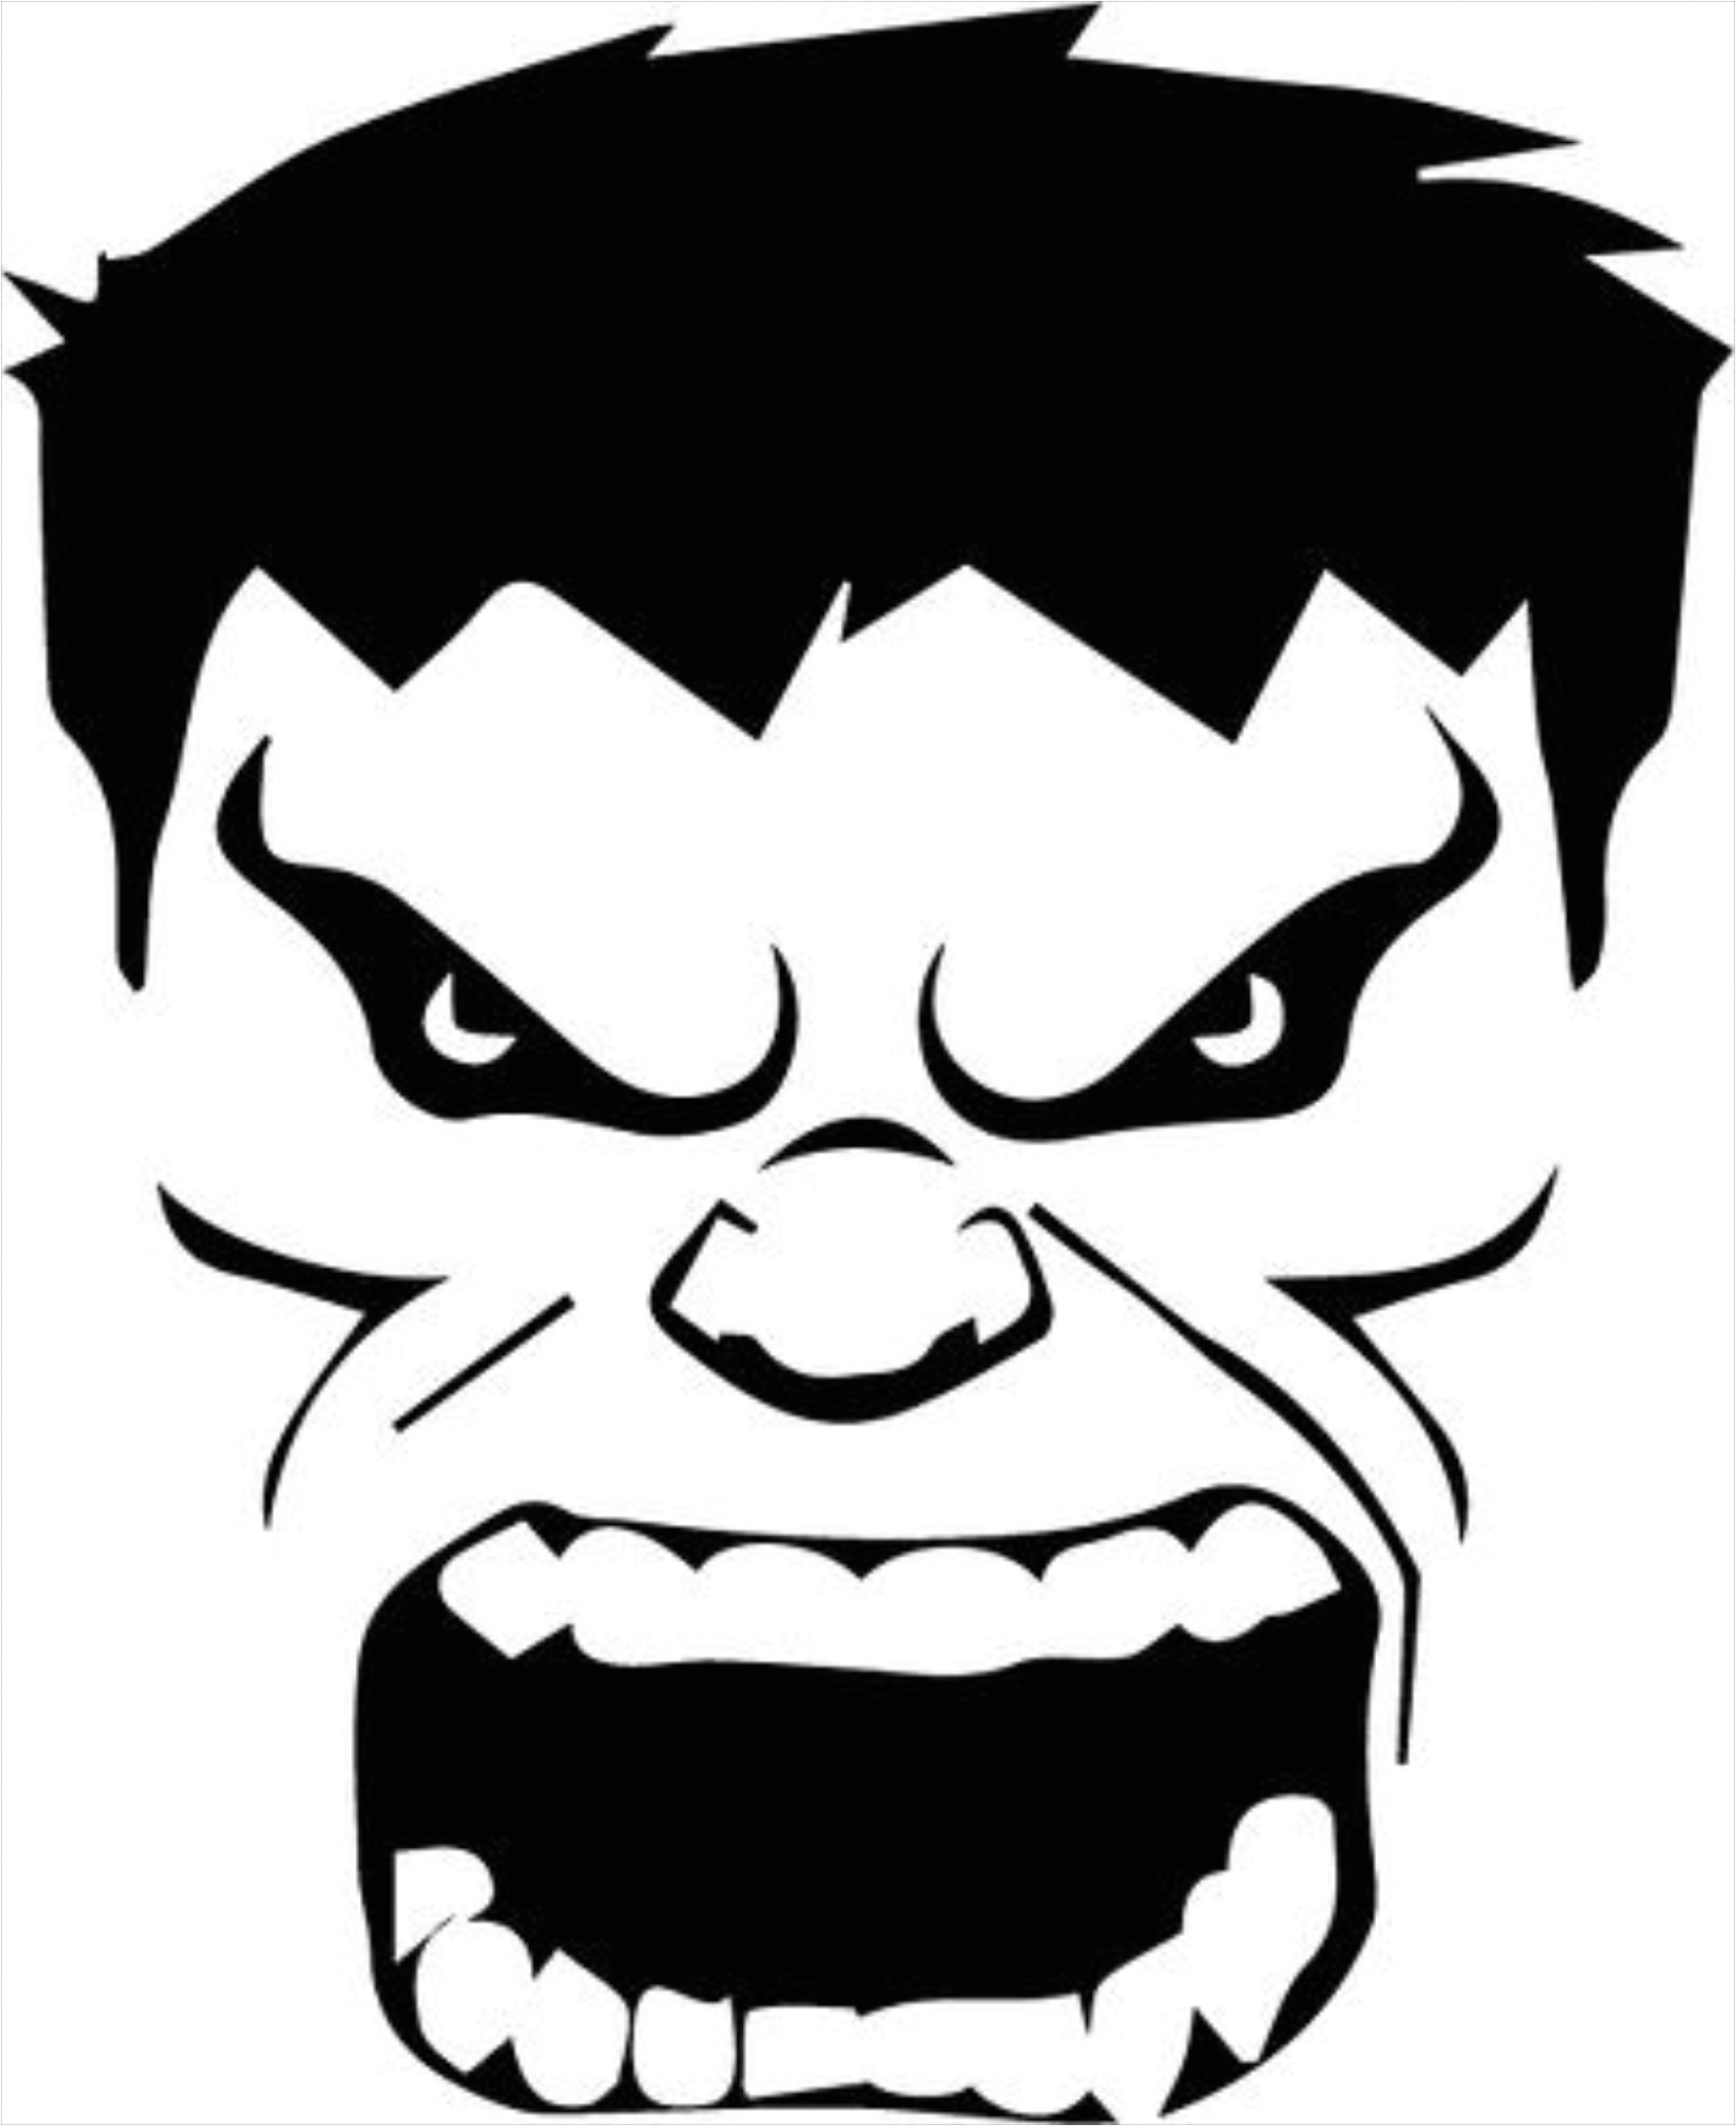 Incredible Hulk Face Template Incredible Hulk Face Template Image Collections